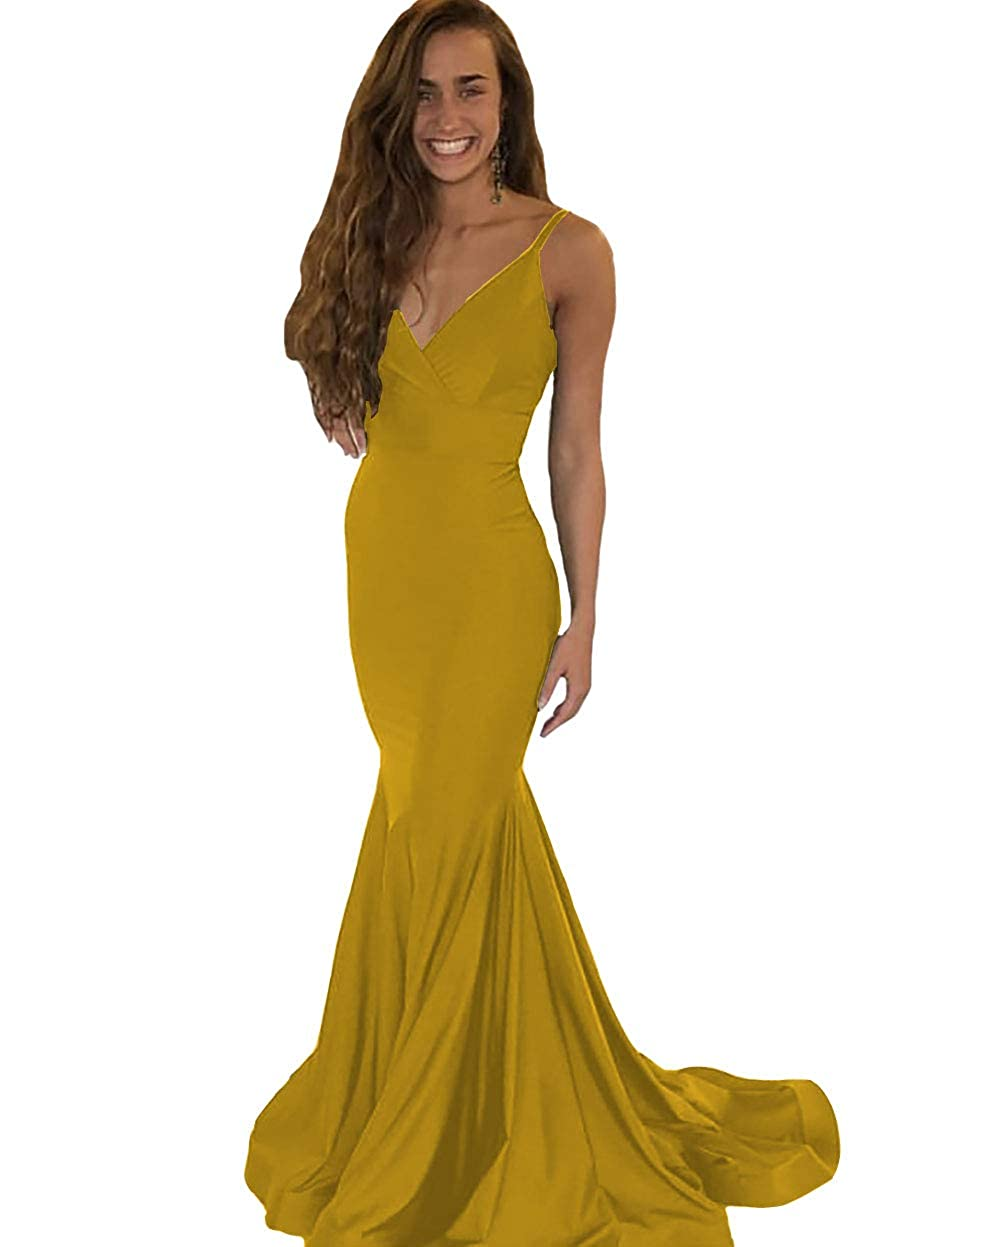 gold IVYPRECIOUS Women's V Neck Mermaid Long Backless Prom Dresses Evening Gowns